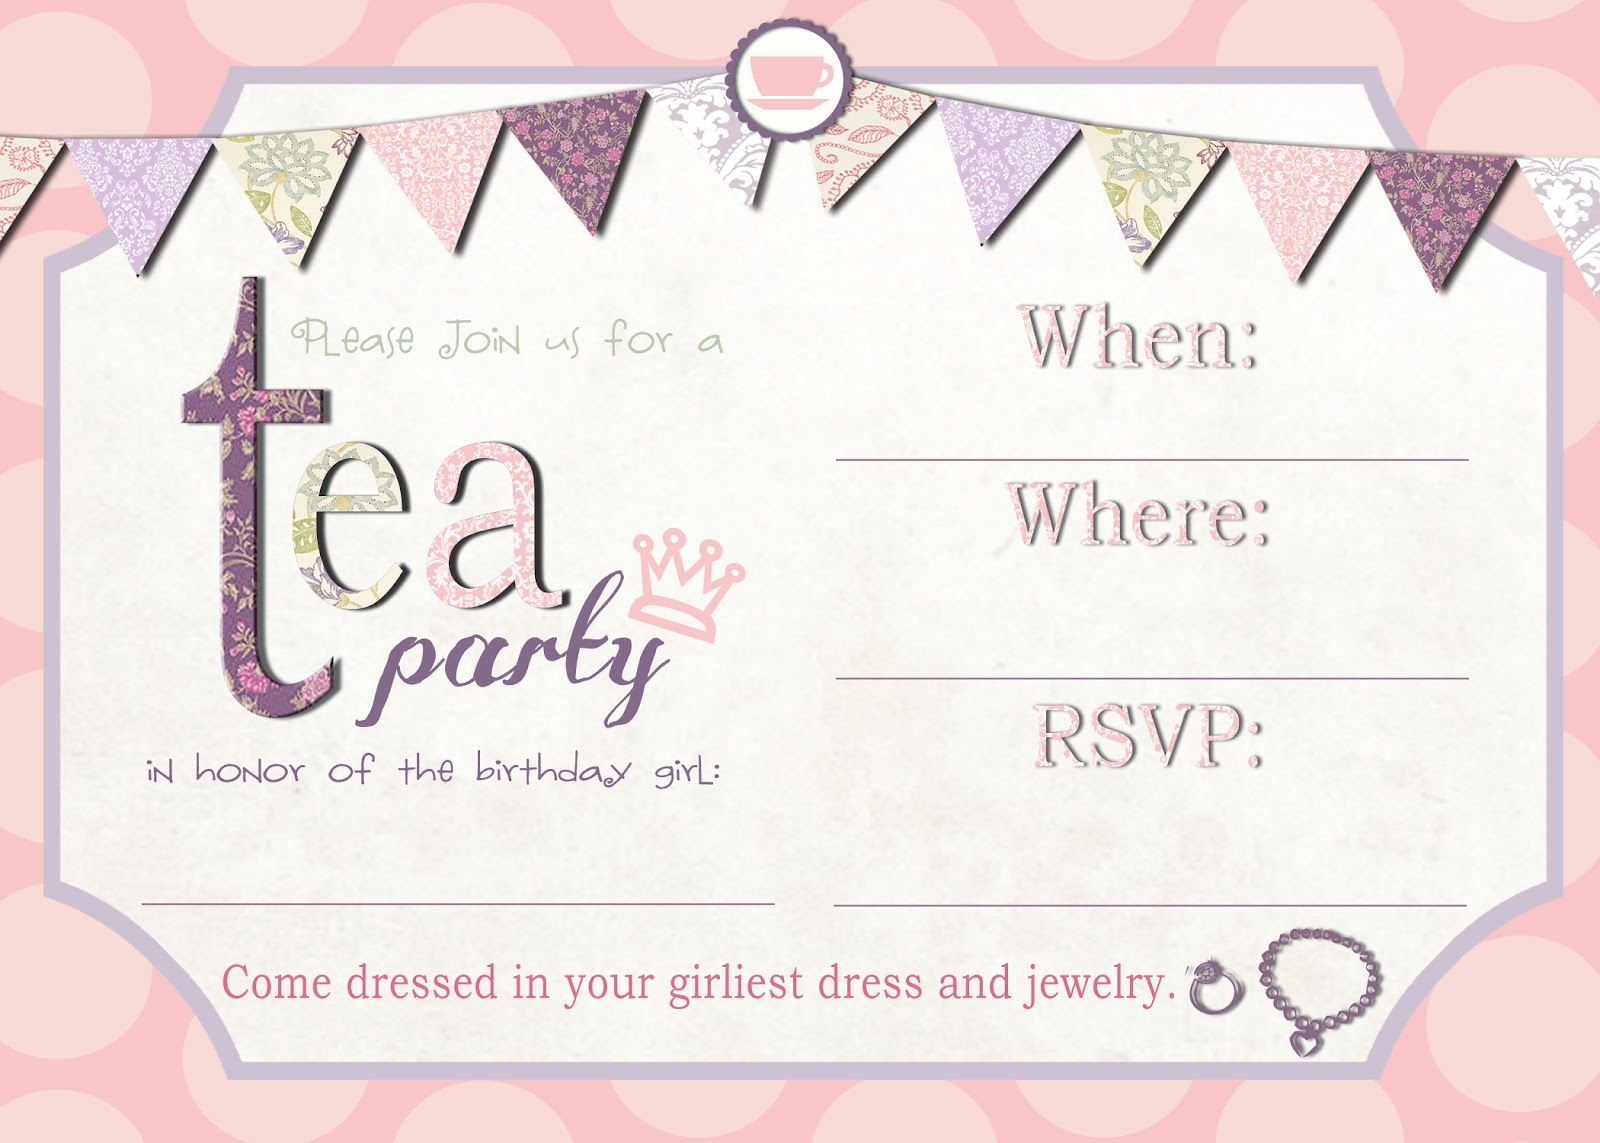 printable tea party invitation template titihead baby tea party birthday invitations printable template tea party birthday invitations tea party ideas tea party invitation template princess tea party